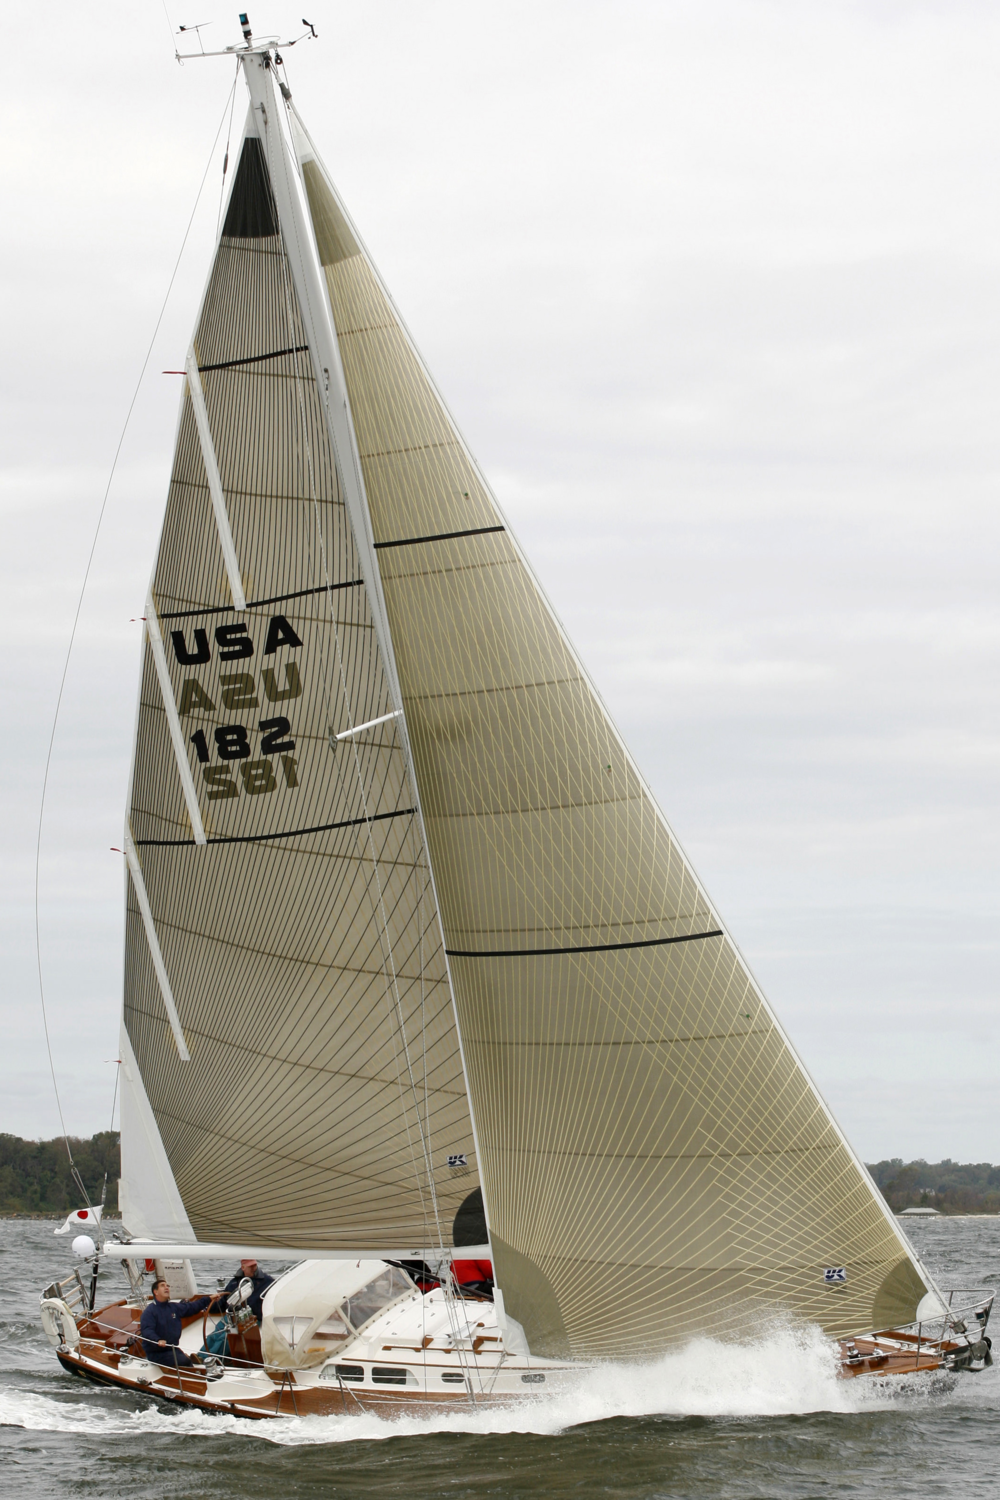 Hinckley Bermuda 40 with Tape-Drive in-mast furling with vertical battens.